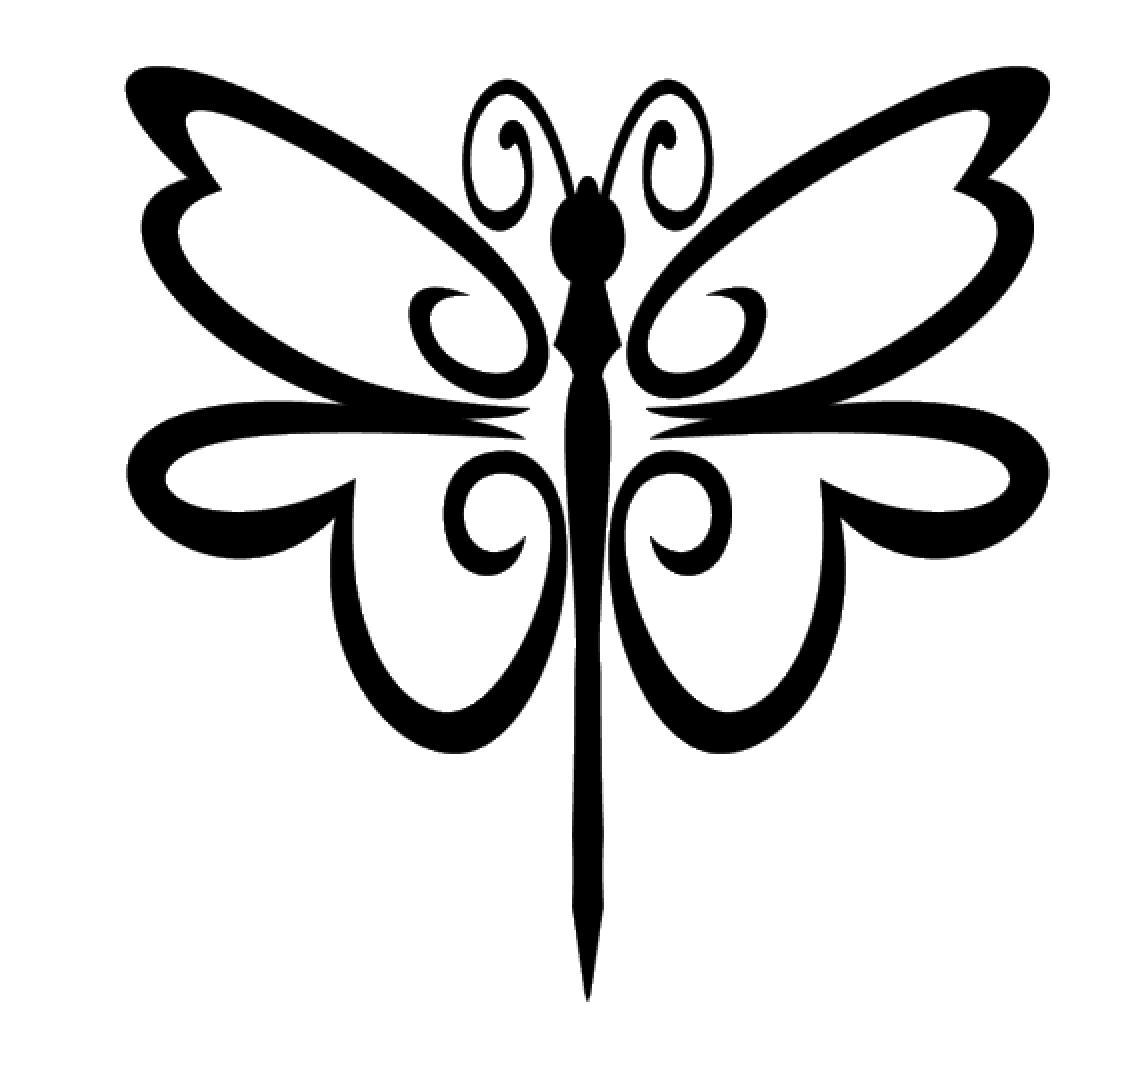 dragonfly vinyl decal sticker for home cup